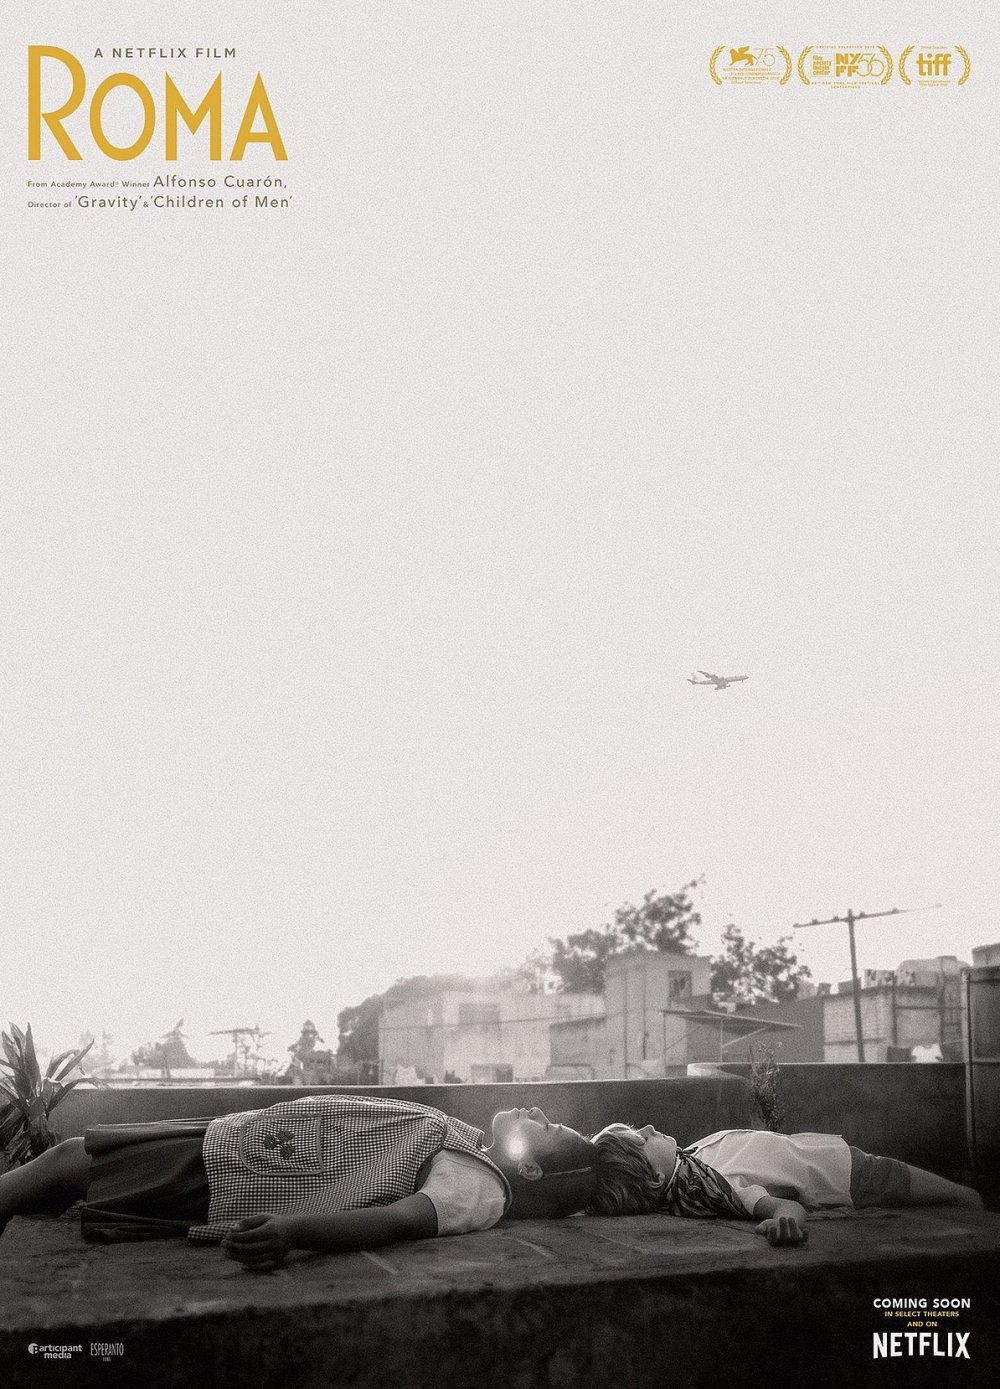 <strong>Roma</strong> – Straight from the heart of Alfonso Cuarón (Gravity, Children of Men), this glorious reminiscence of a momentous year is a sumptuous black-and-white ode to the woman who shaped his early life